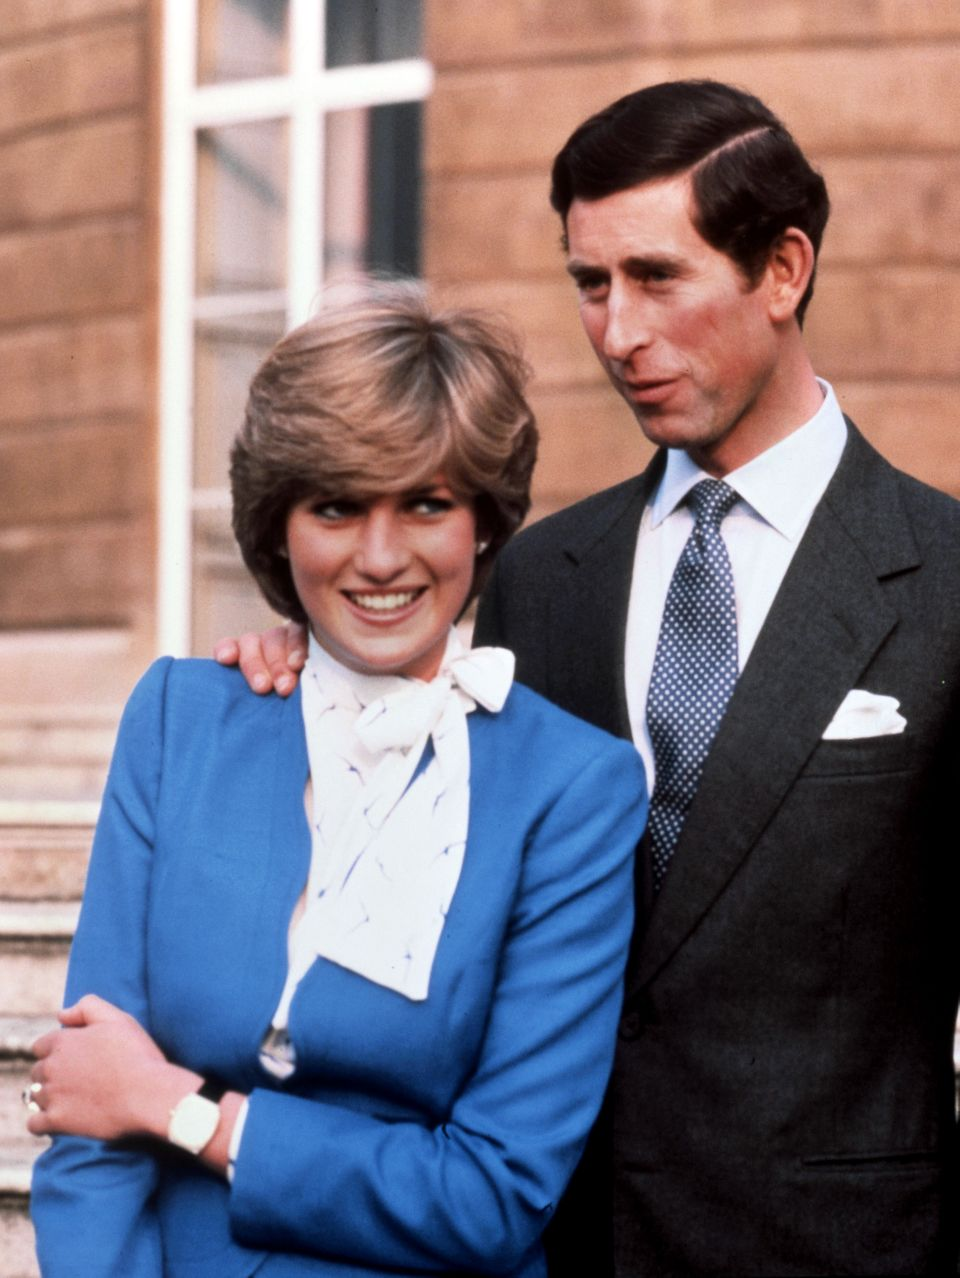 Prince Charles and Lady Diana Spencer on their engagement day at Buckingham